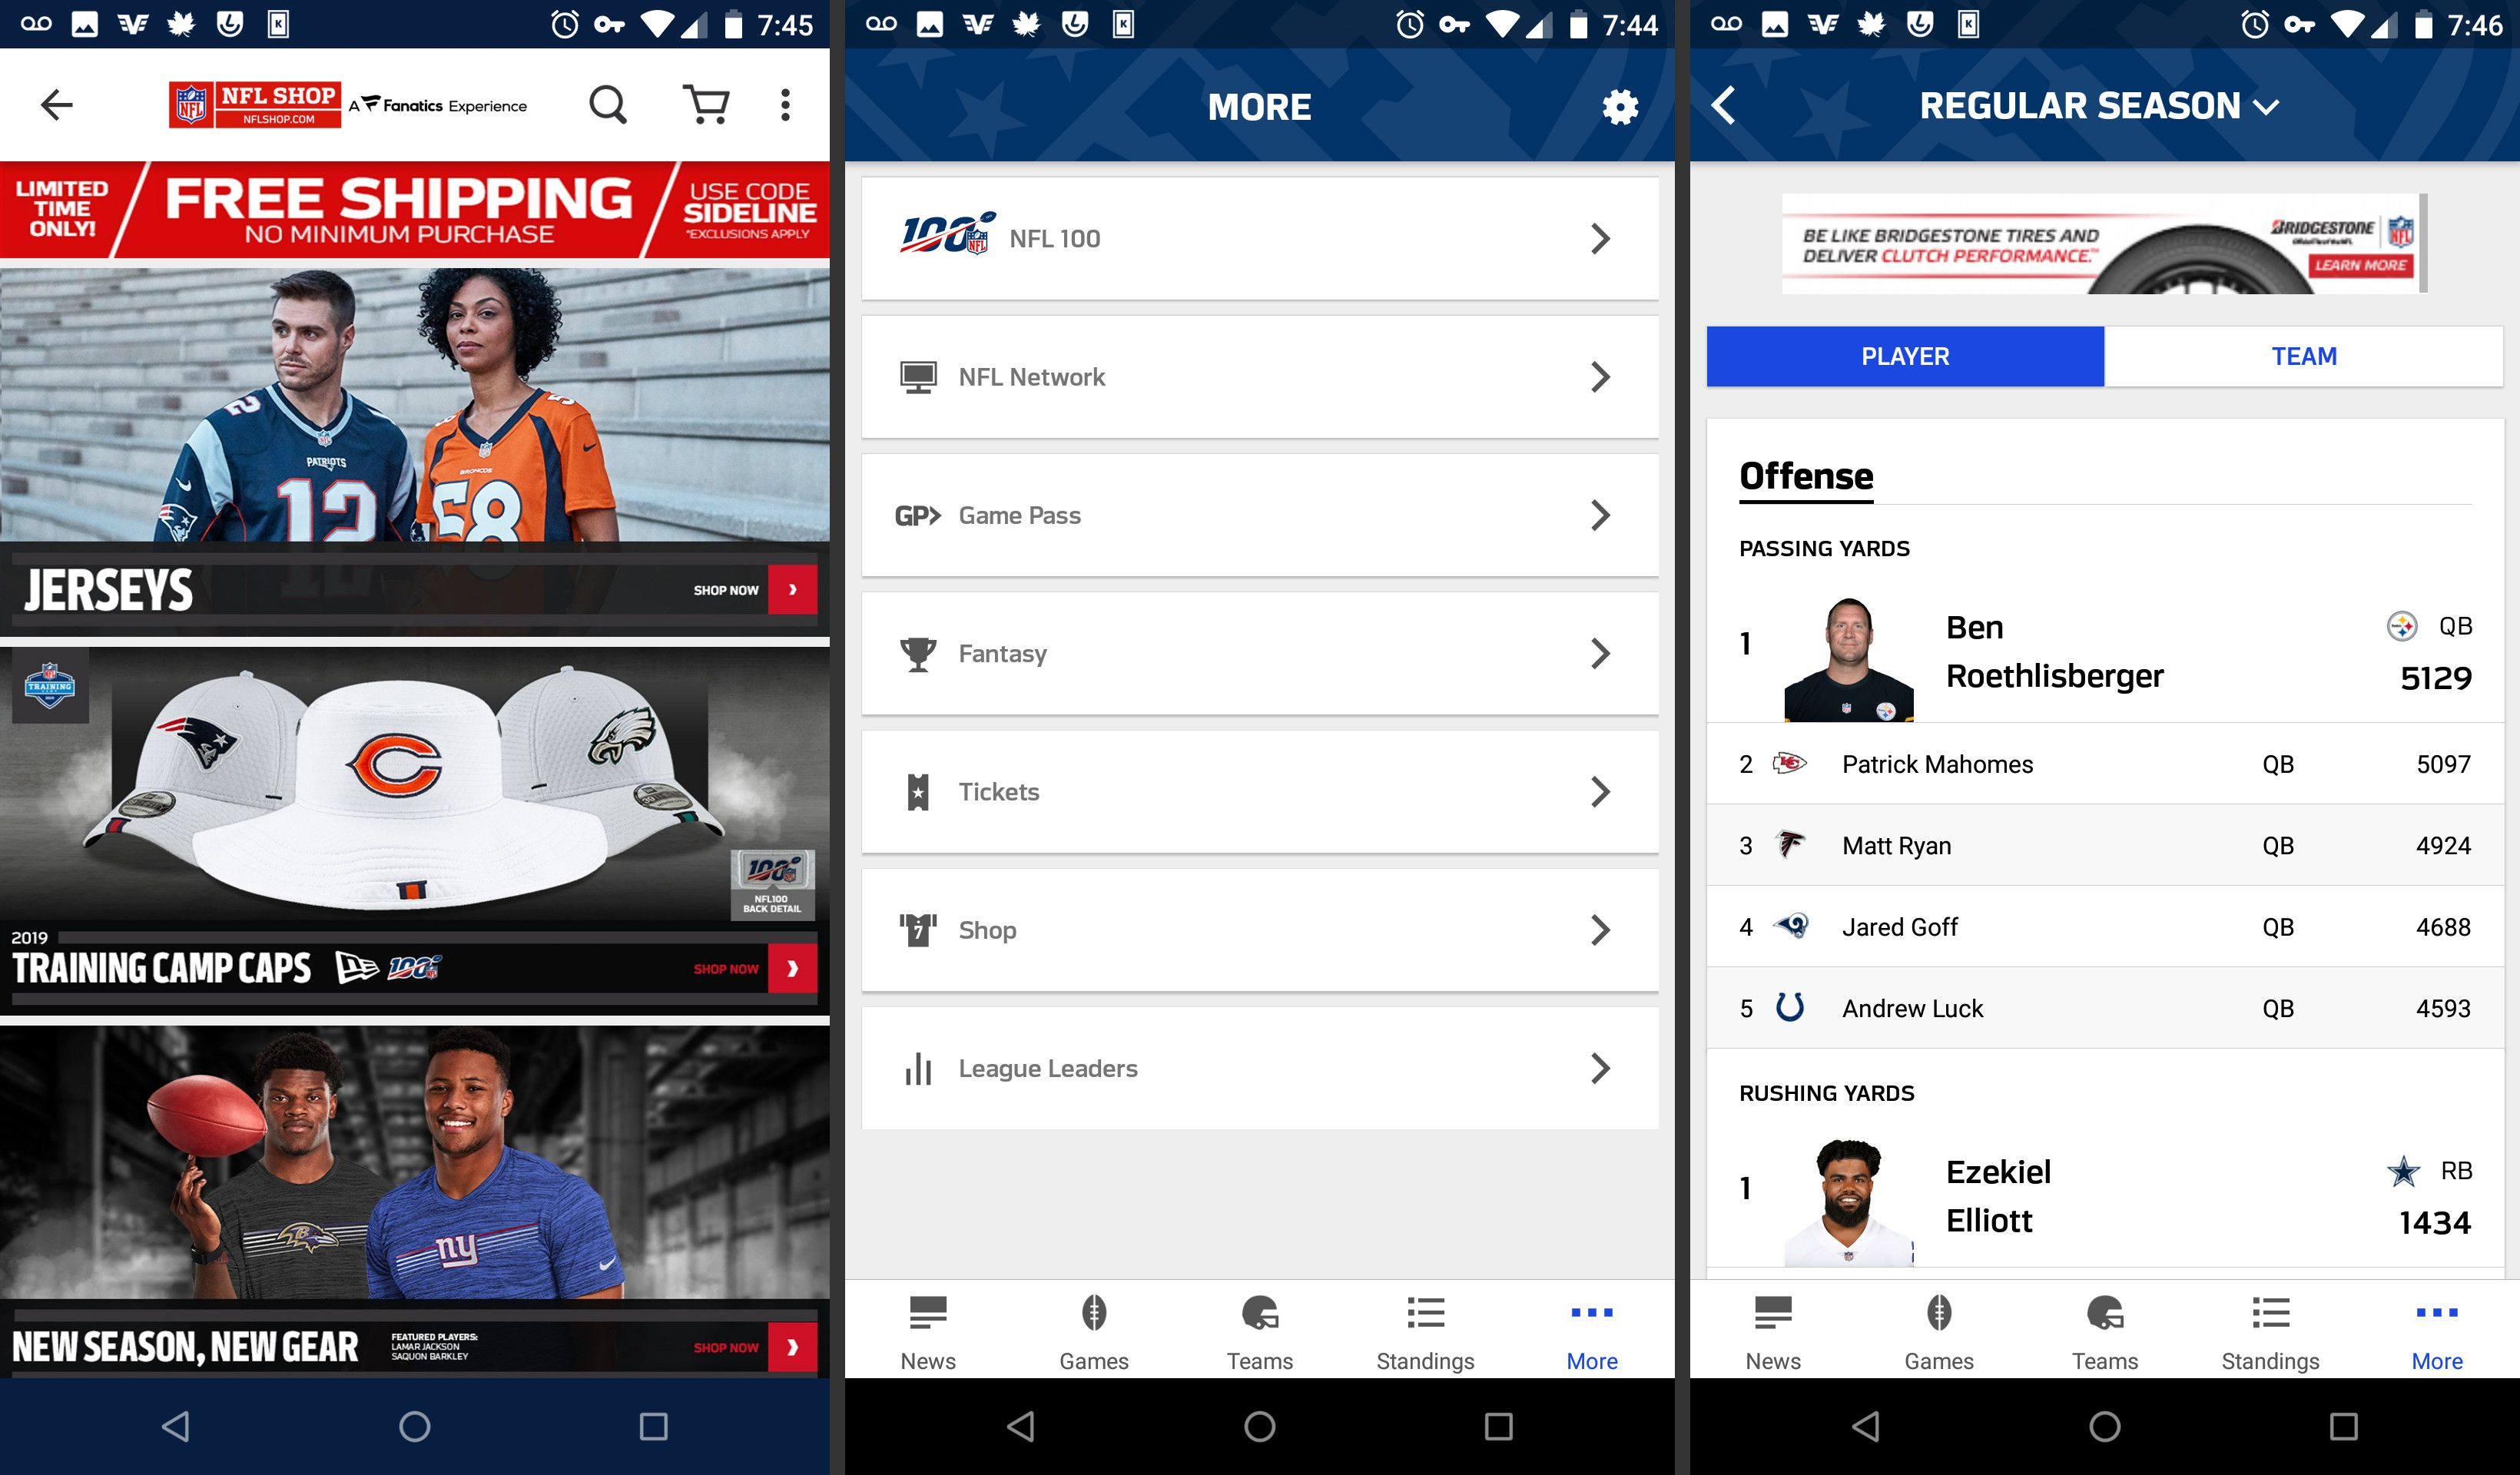 NFL app more features